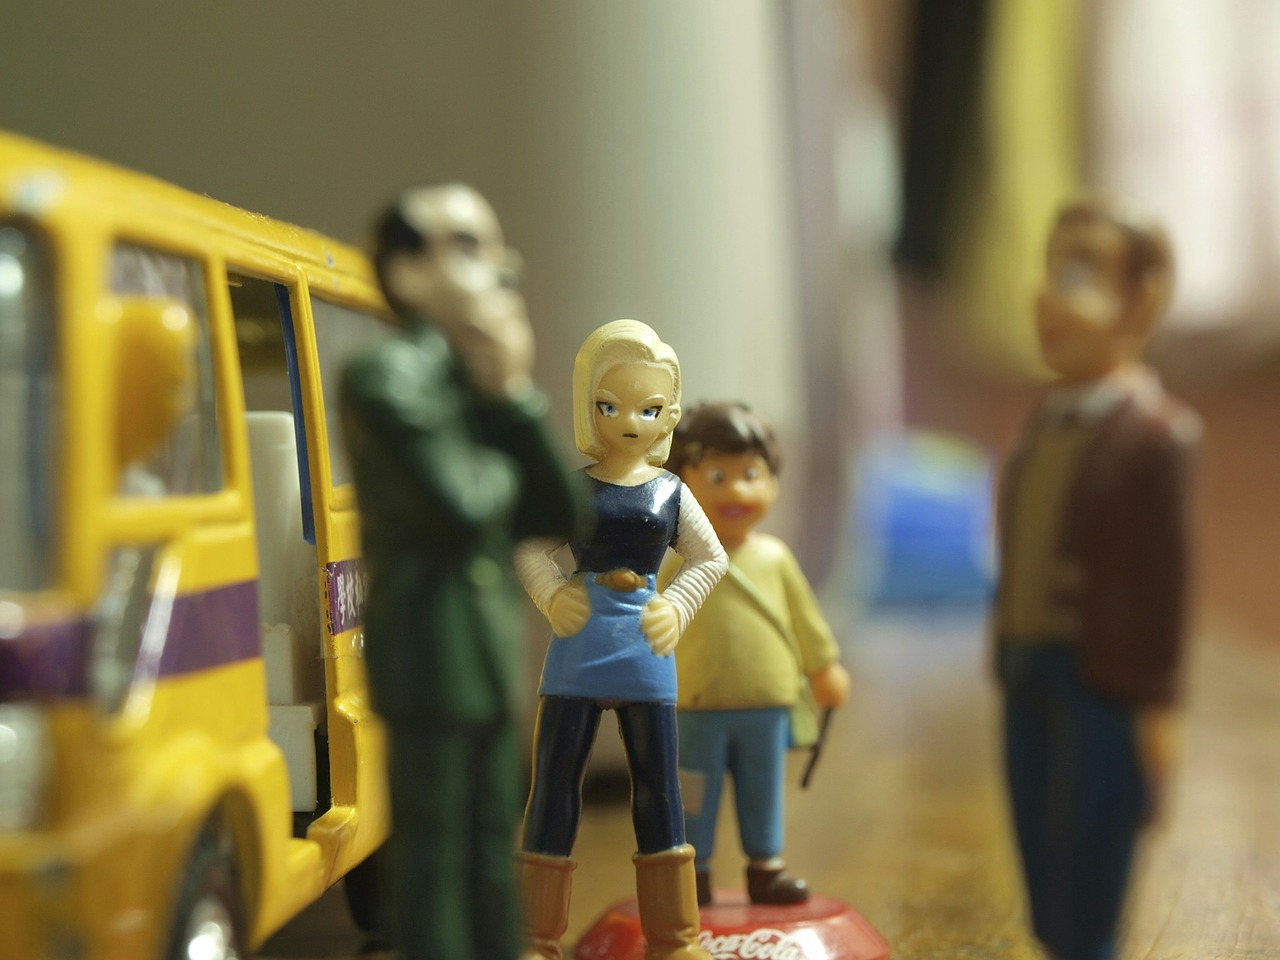 toy,miniature,waiting,bus stop,public transport,bus,teen,girl,impatience,standing,free pictures, free photos, free images, royalty free, free illustrations